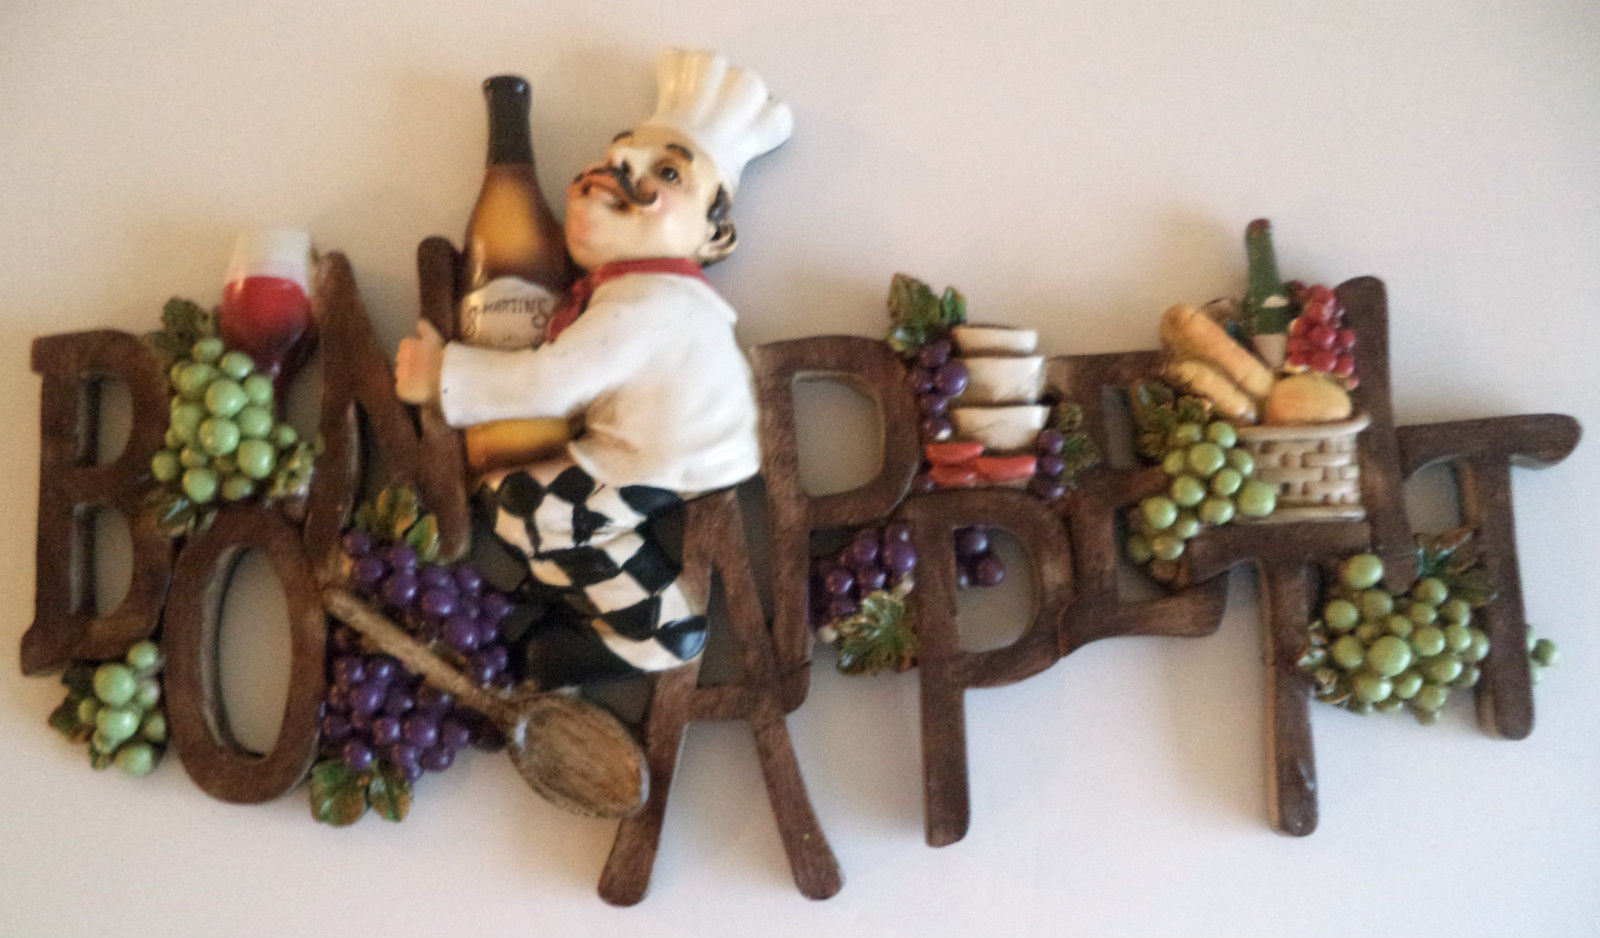 New Bon Appetit Wall Plaque Wine Bottles Grapes Wall Art Cafe Kitchen Decor 3d Plaques Signs